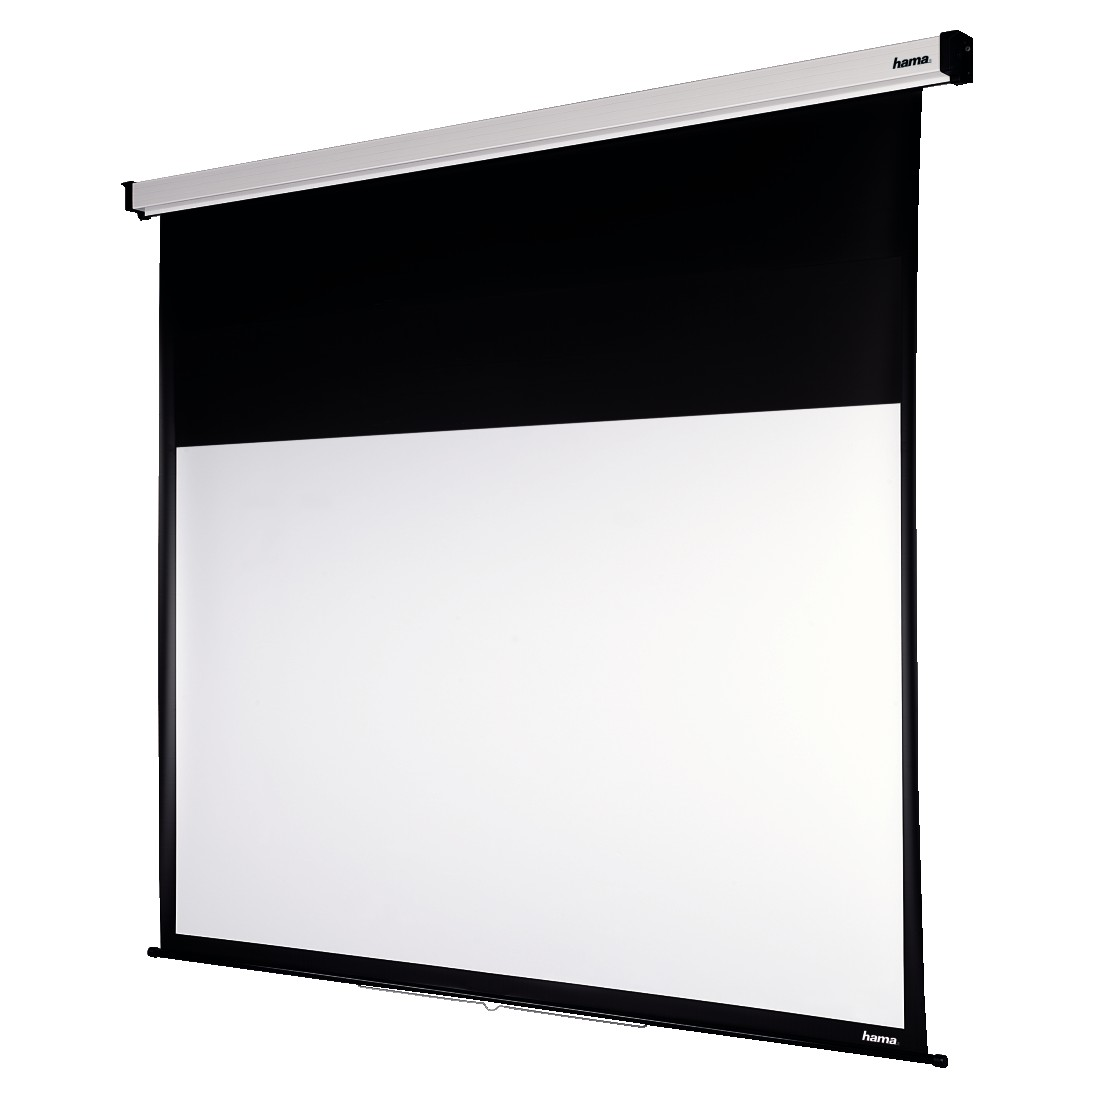 abx3 High-Res Image 3 - Hama, Roller Projection Screen, 200 x 150 cm, 16:9